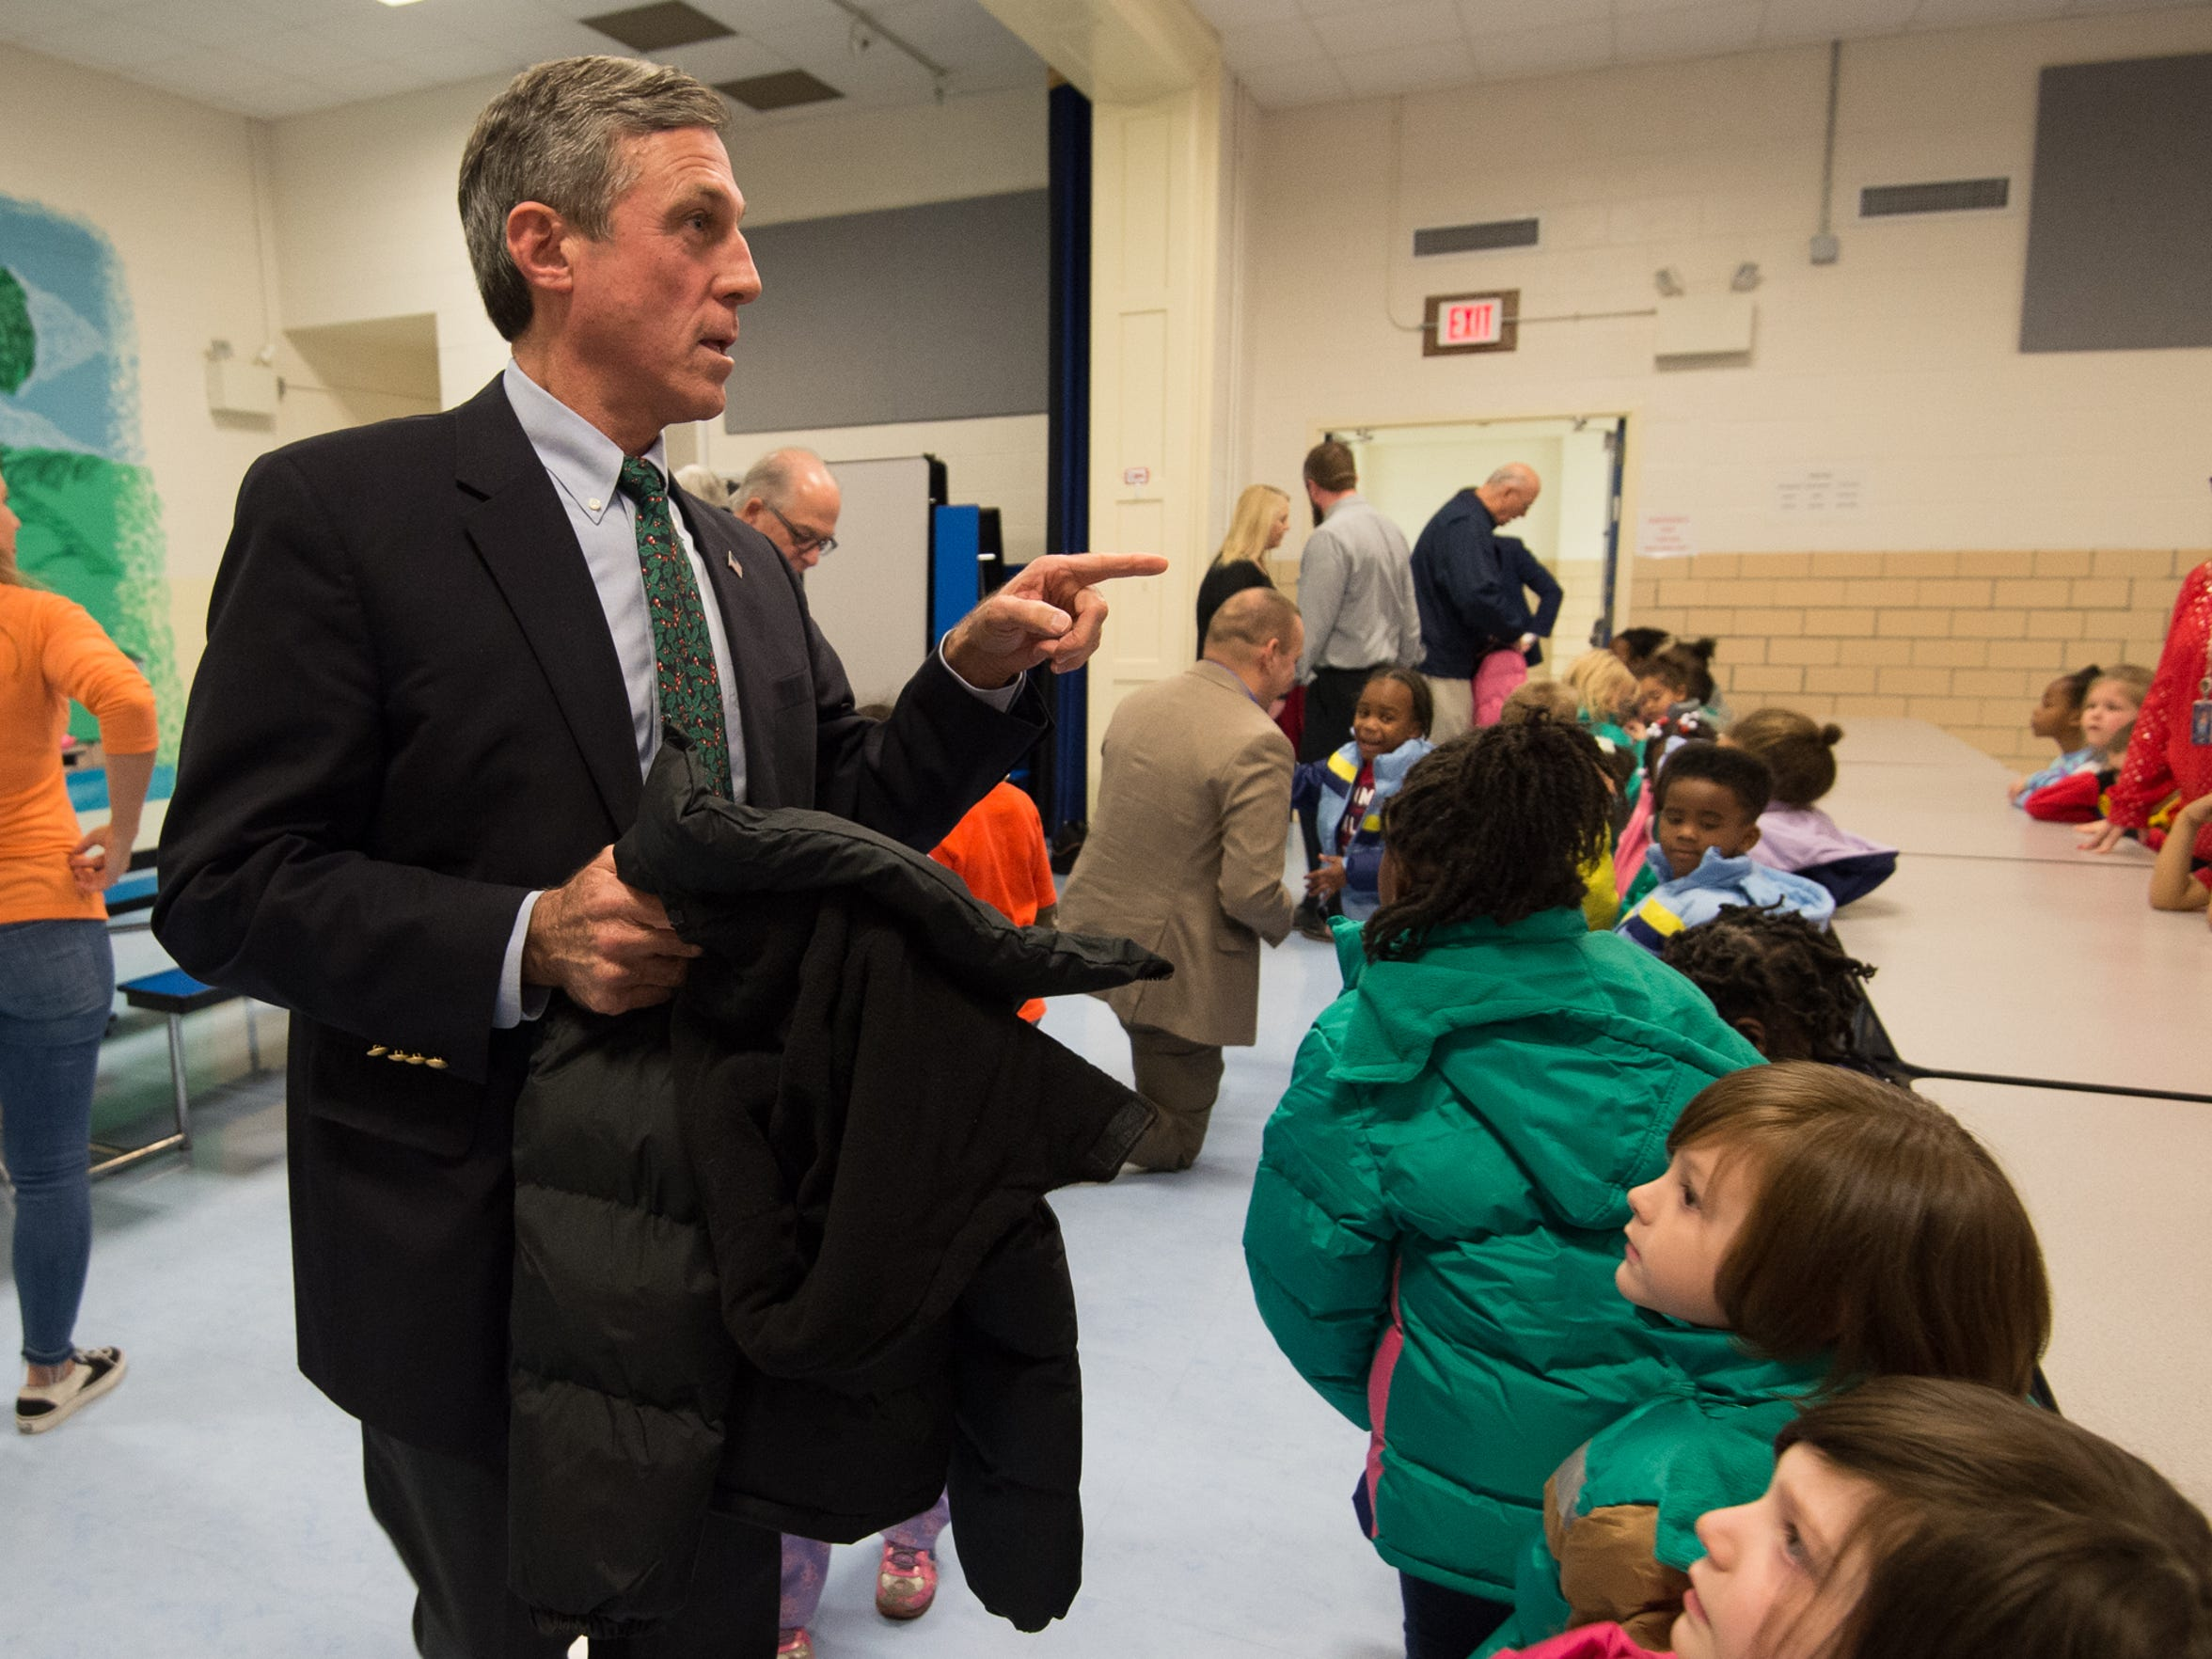 Governor John Carney helps hand out winter coats at West Seaford Elementary School.